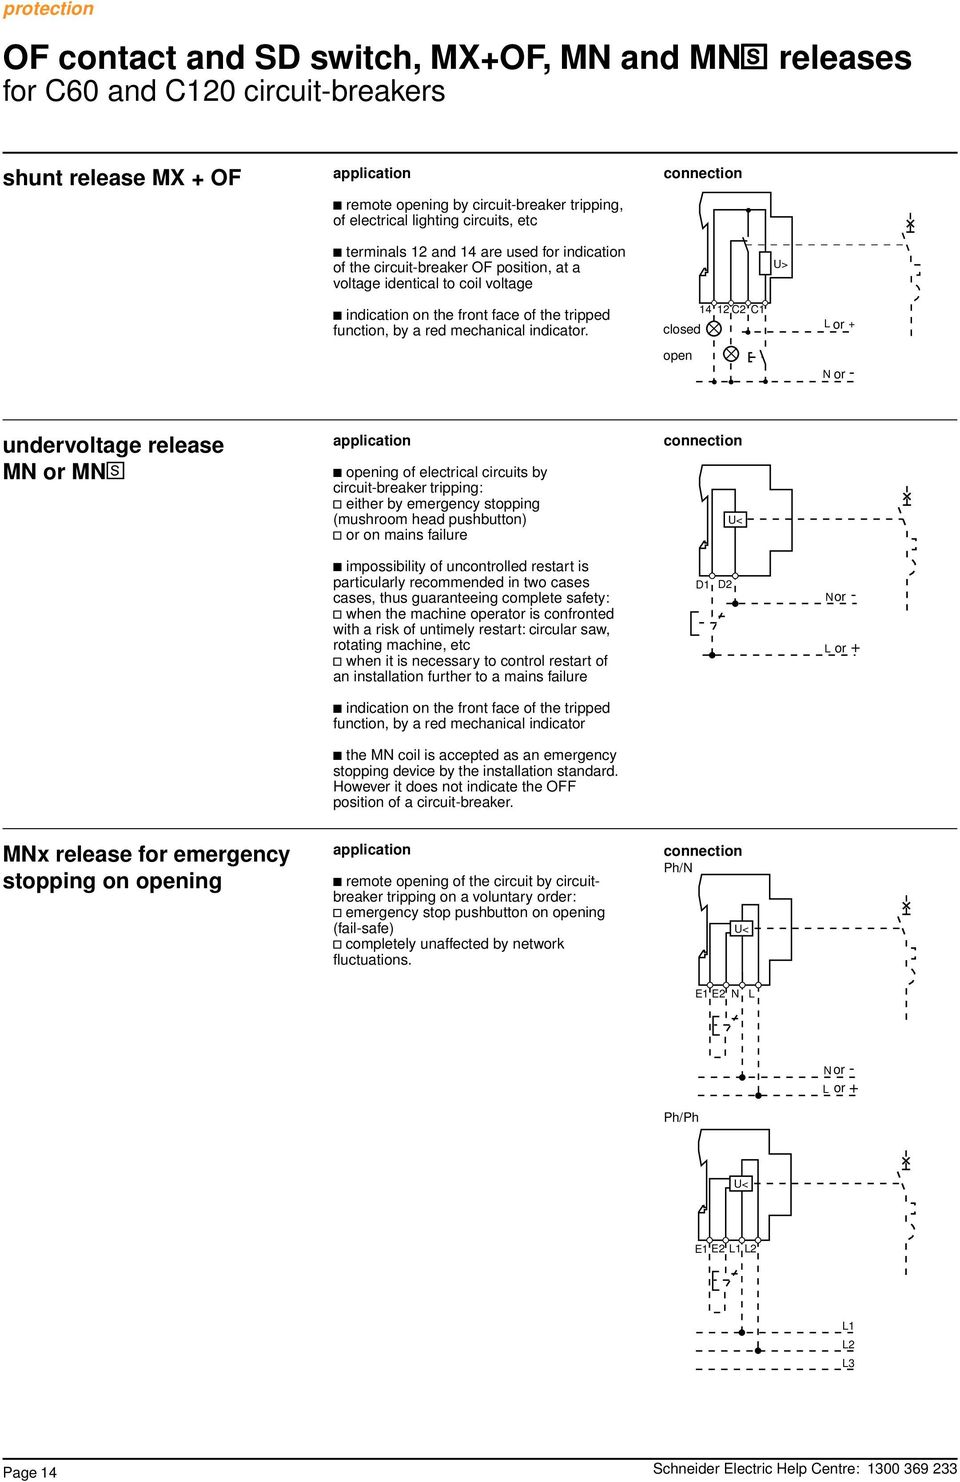 Fail Safe Shunt Trip Breaker Wiring Diagram Trusted Schematics Schematic On Afci Circuit Merlin Gerin Multi 9 System Protection Miniature Breakers Pdf Tripwire